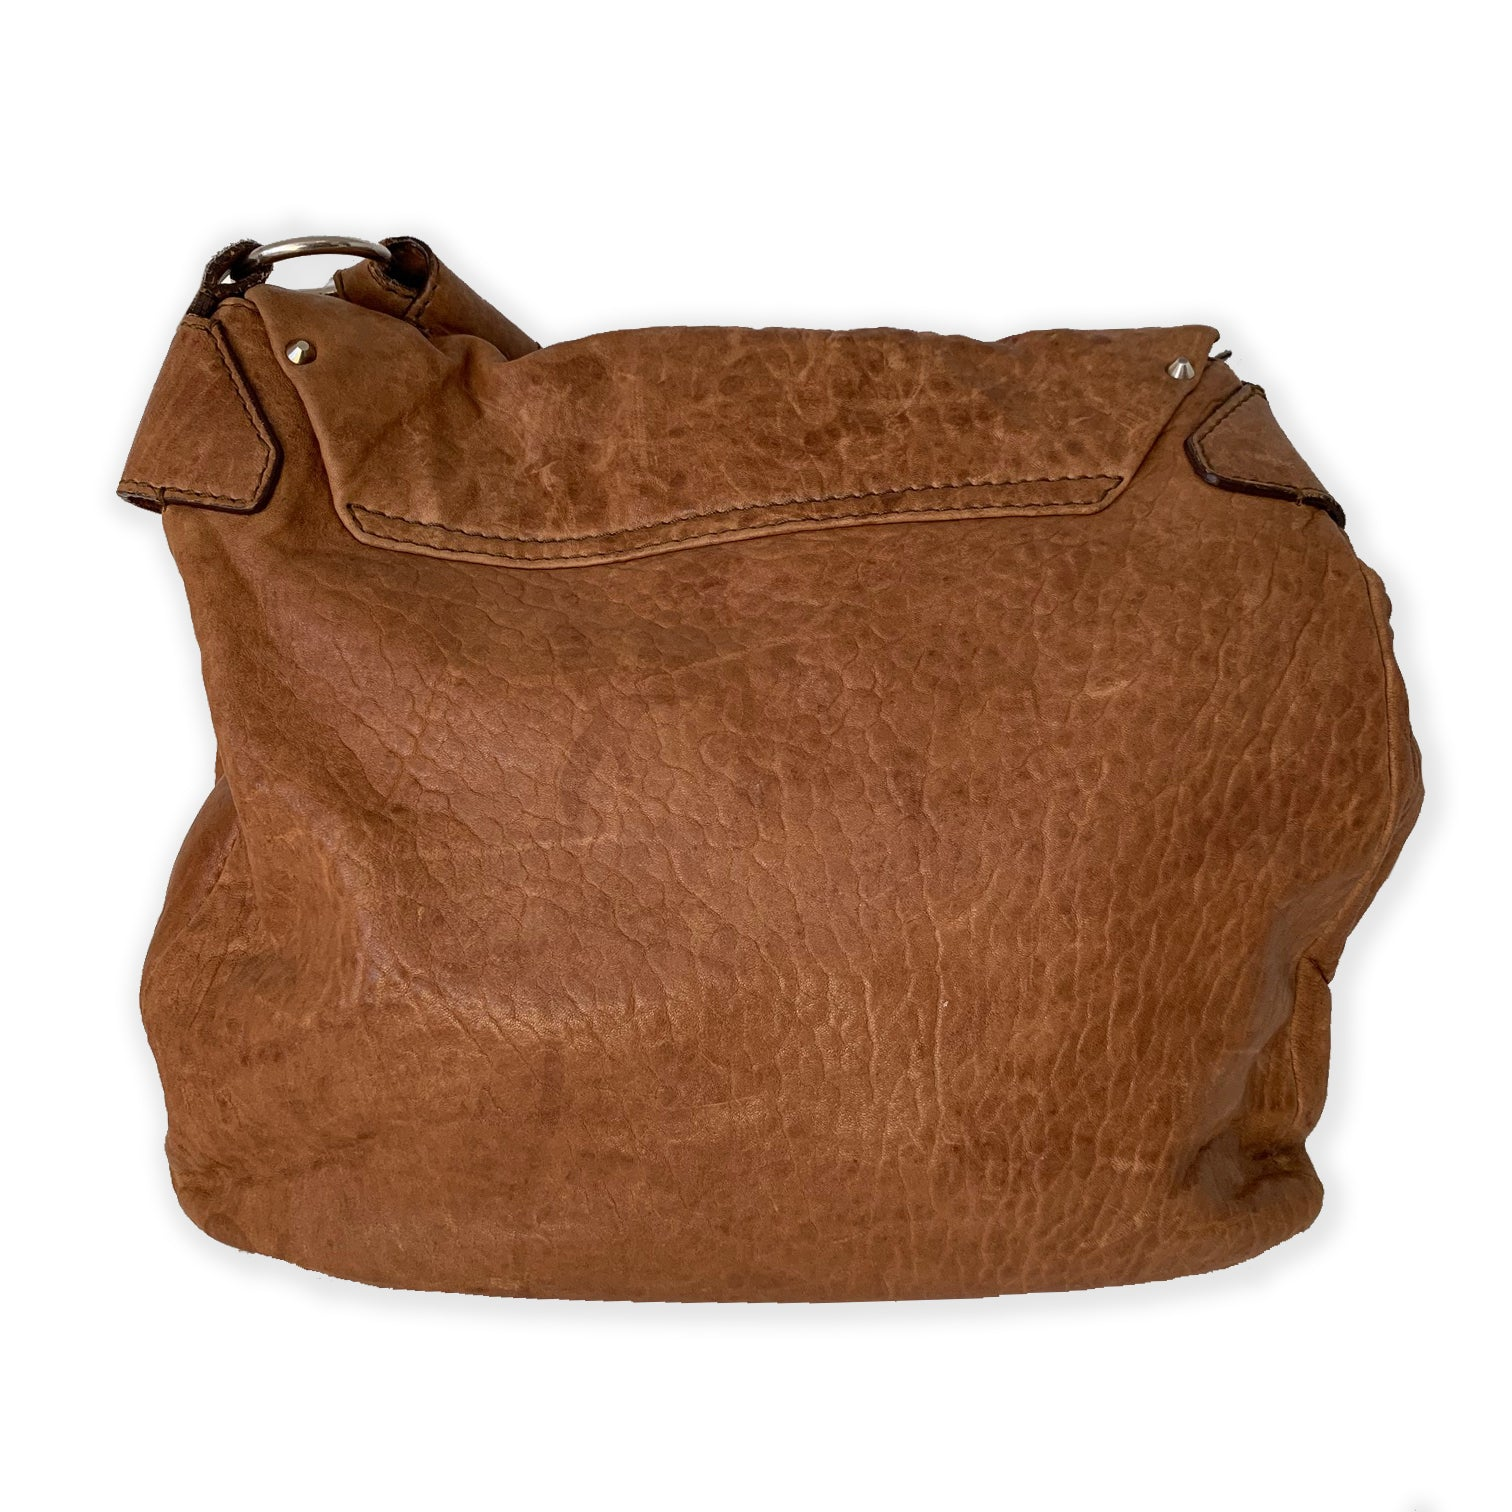 Givenchy Brown Leather Fold Over Shoulder Bag